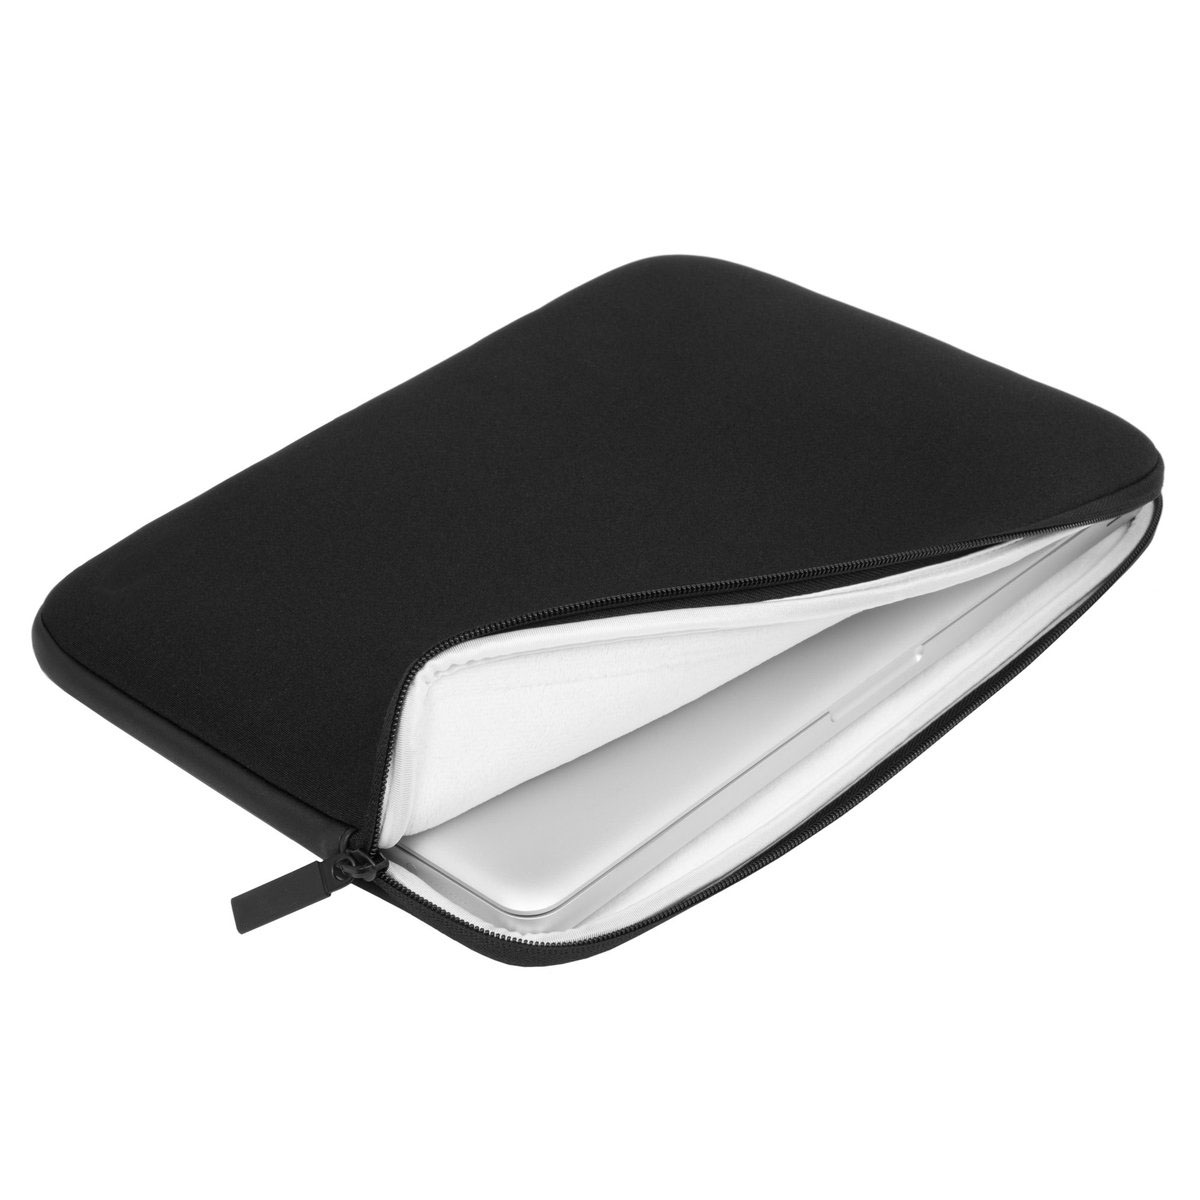 Eco-friendly notebook laptop cover sleeve bag in Ariaprene without neoprene